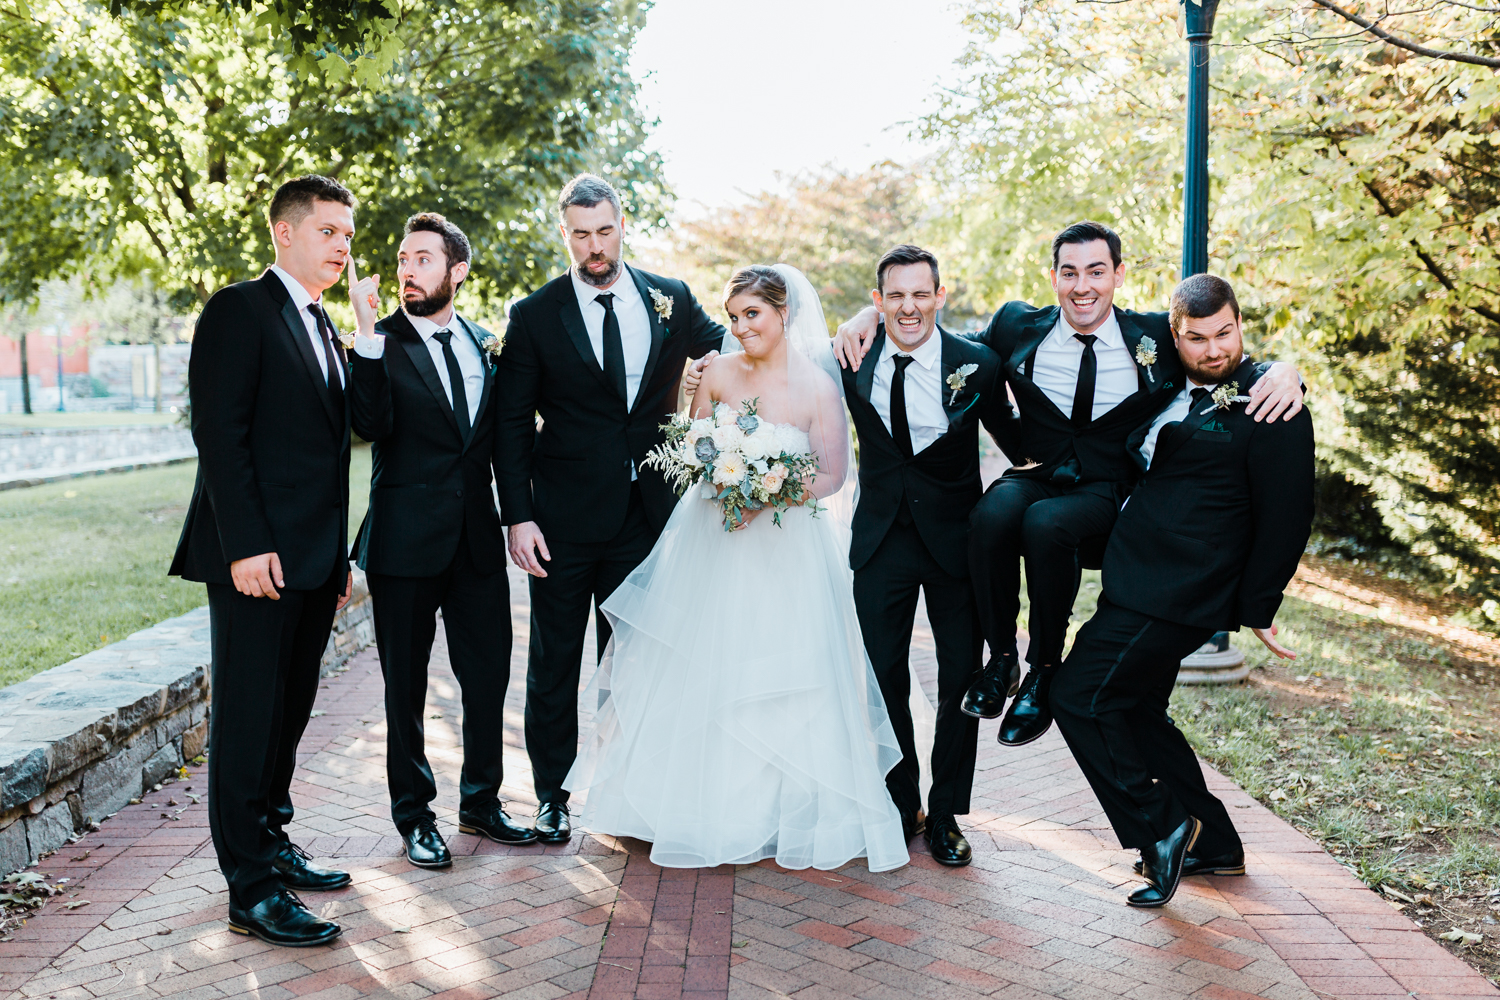 bride and groomsmen share a funny photo - McClintock Distilling wedding